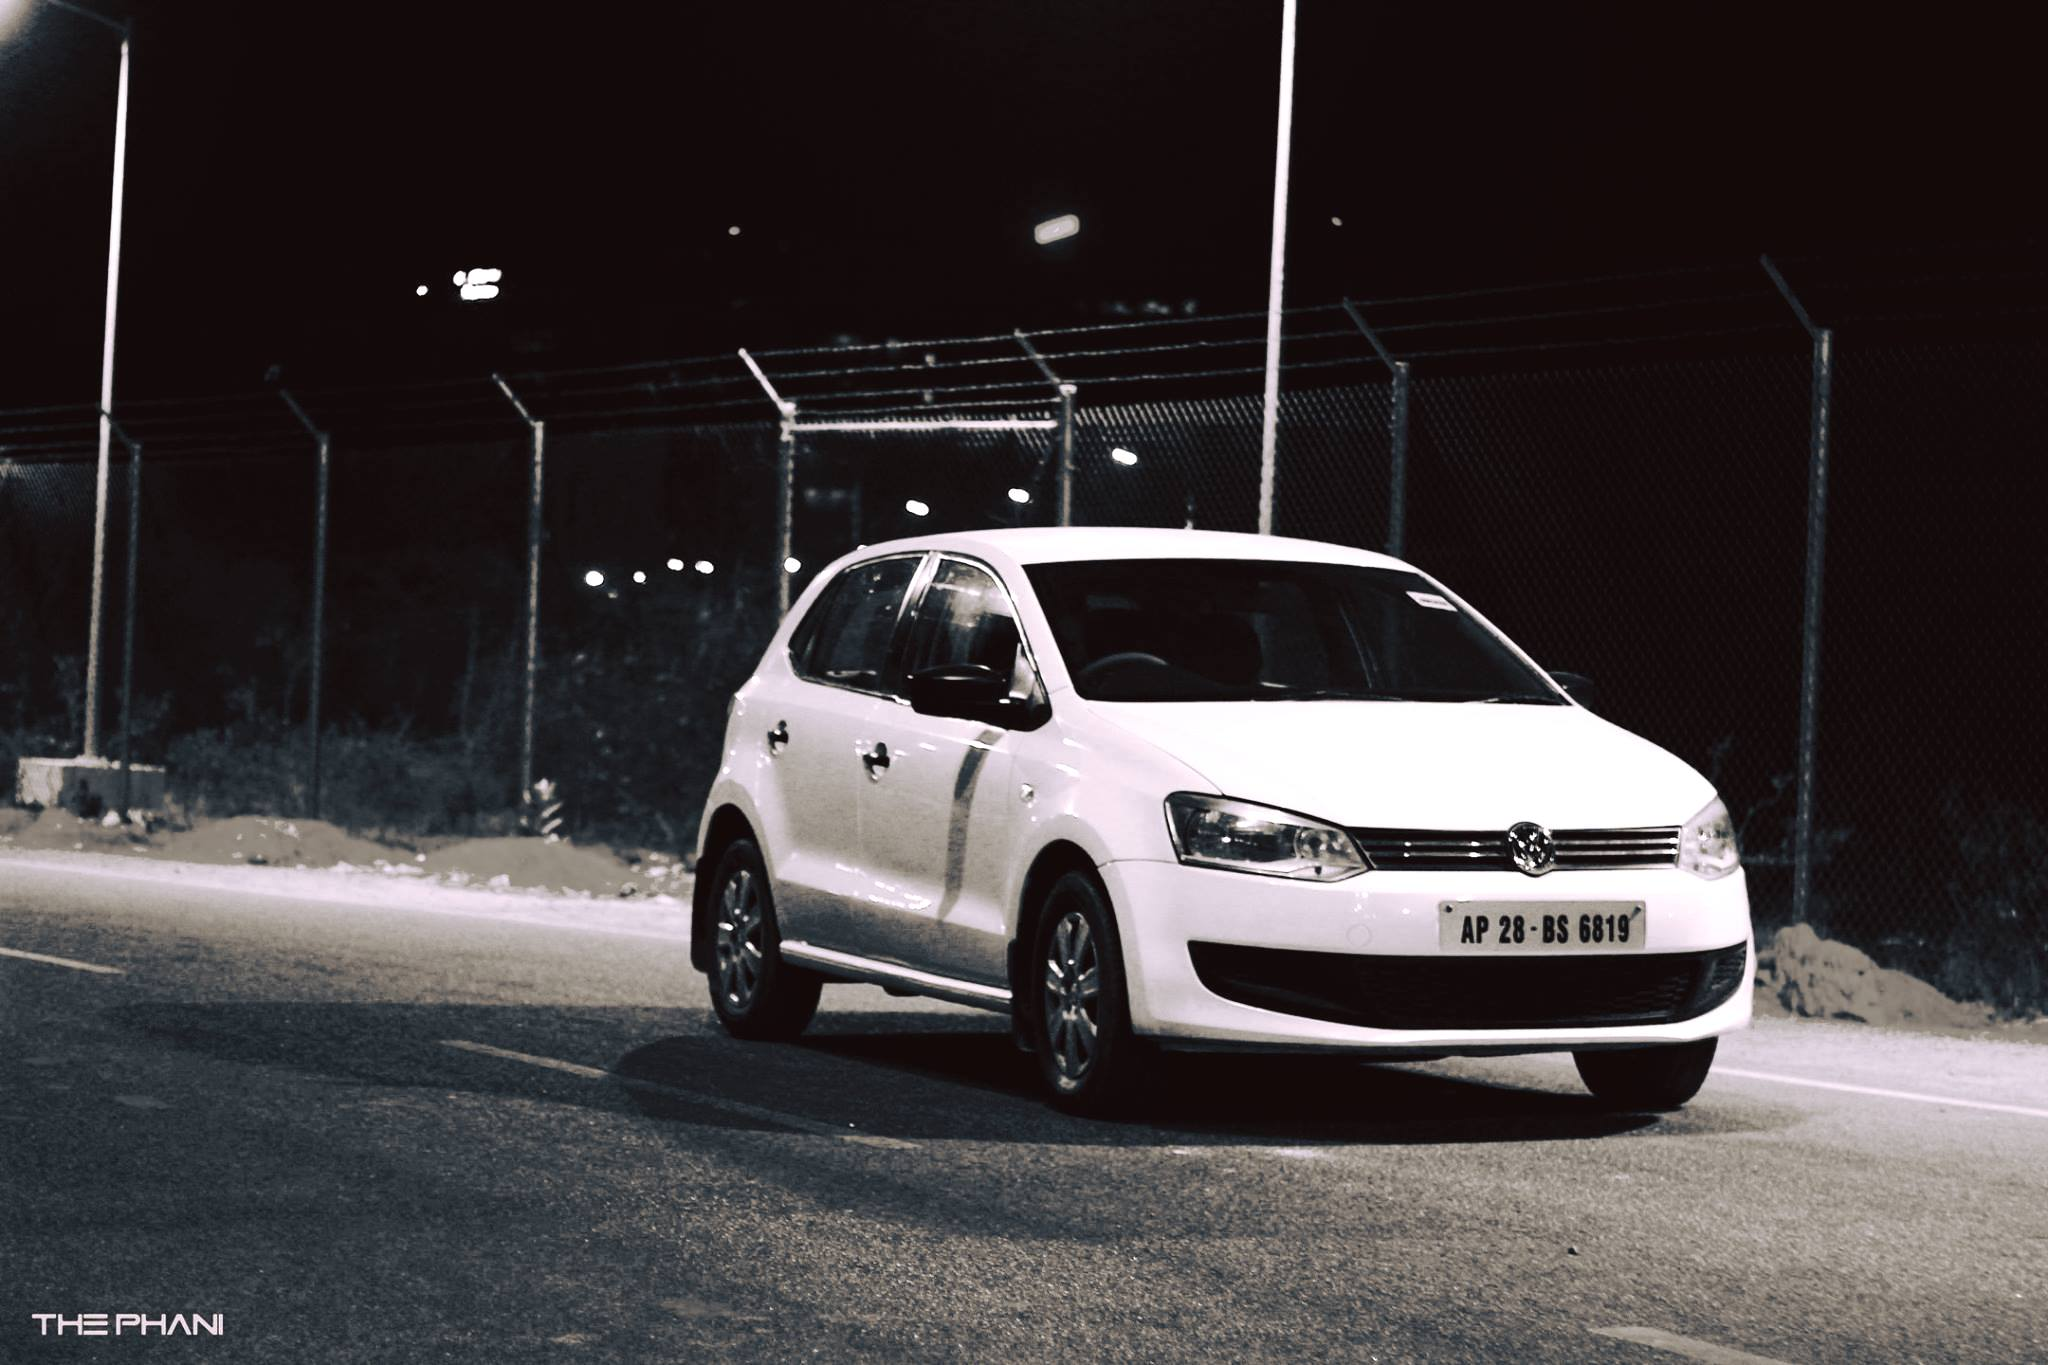 Night Photoshoot of Volkswagen Polo